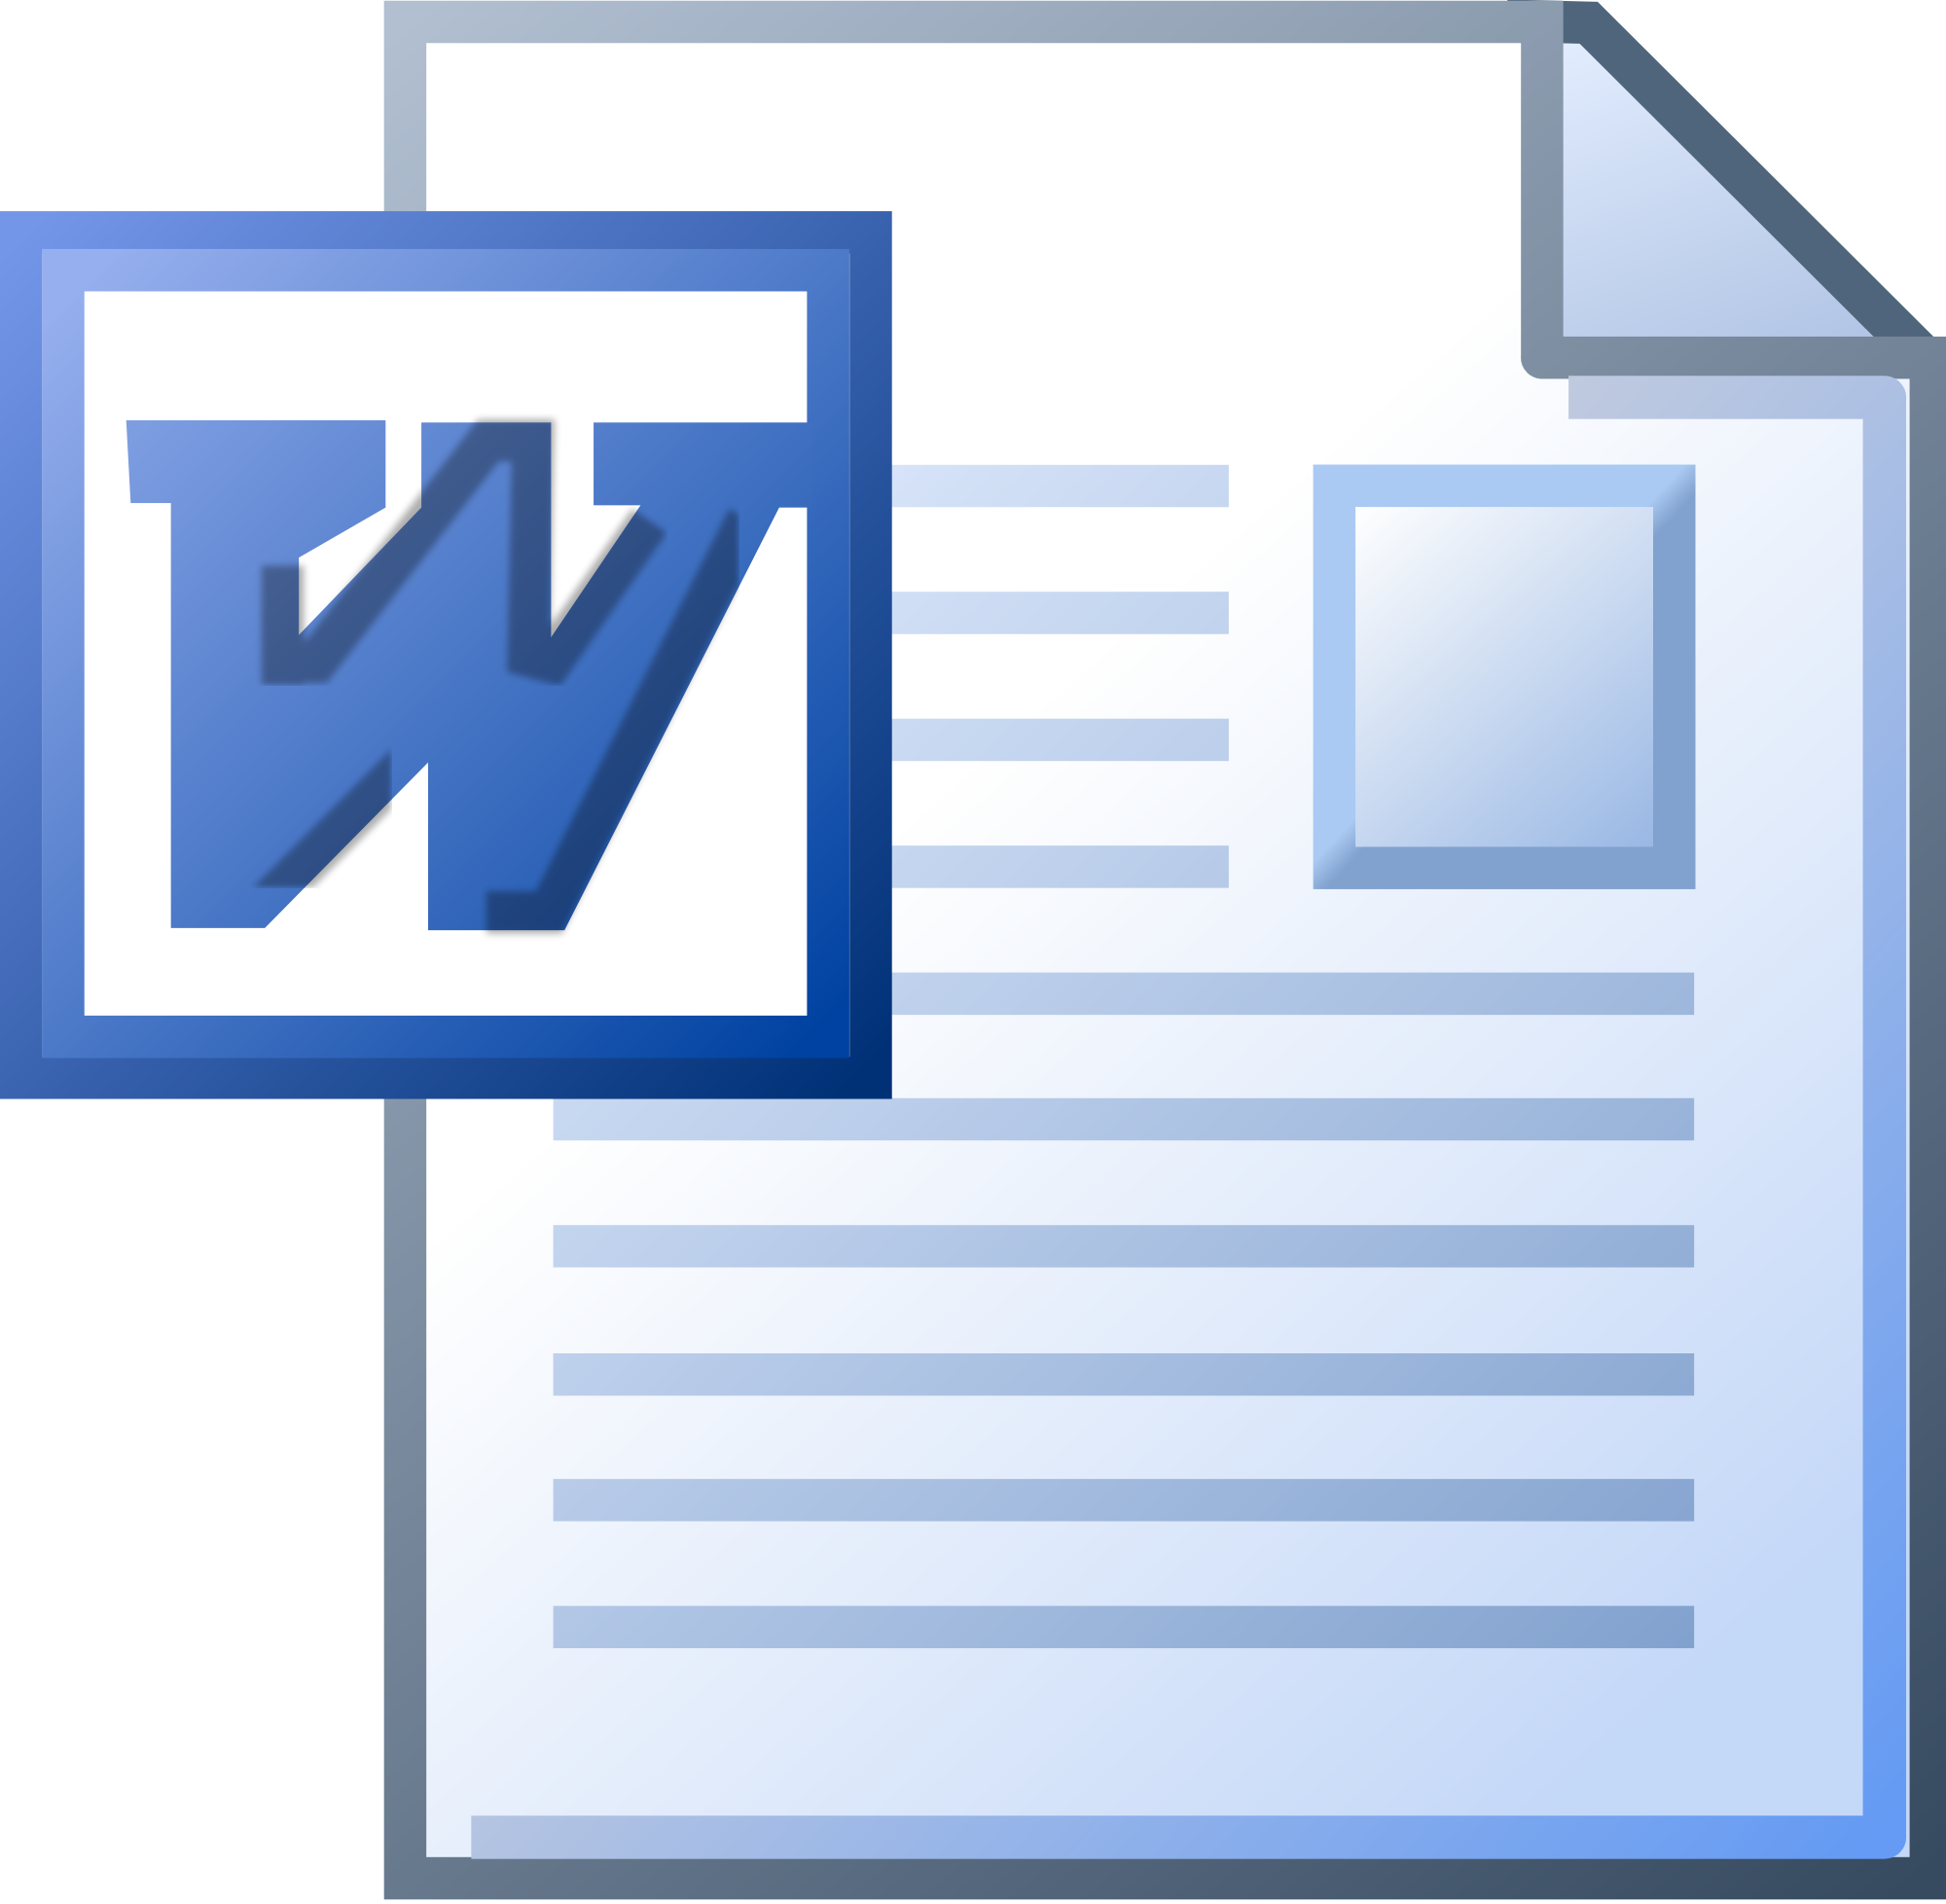 Dissertation - Features for structuring your dissertation (MS Word) (S3.03)